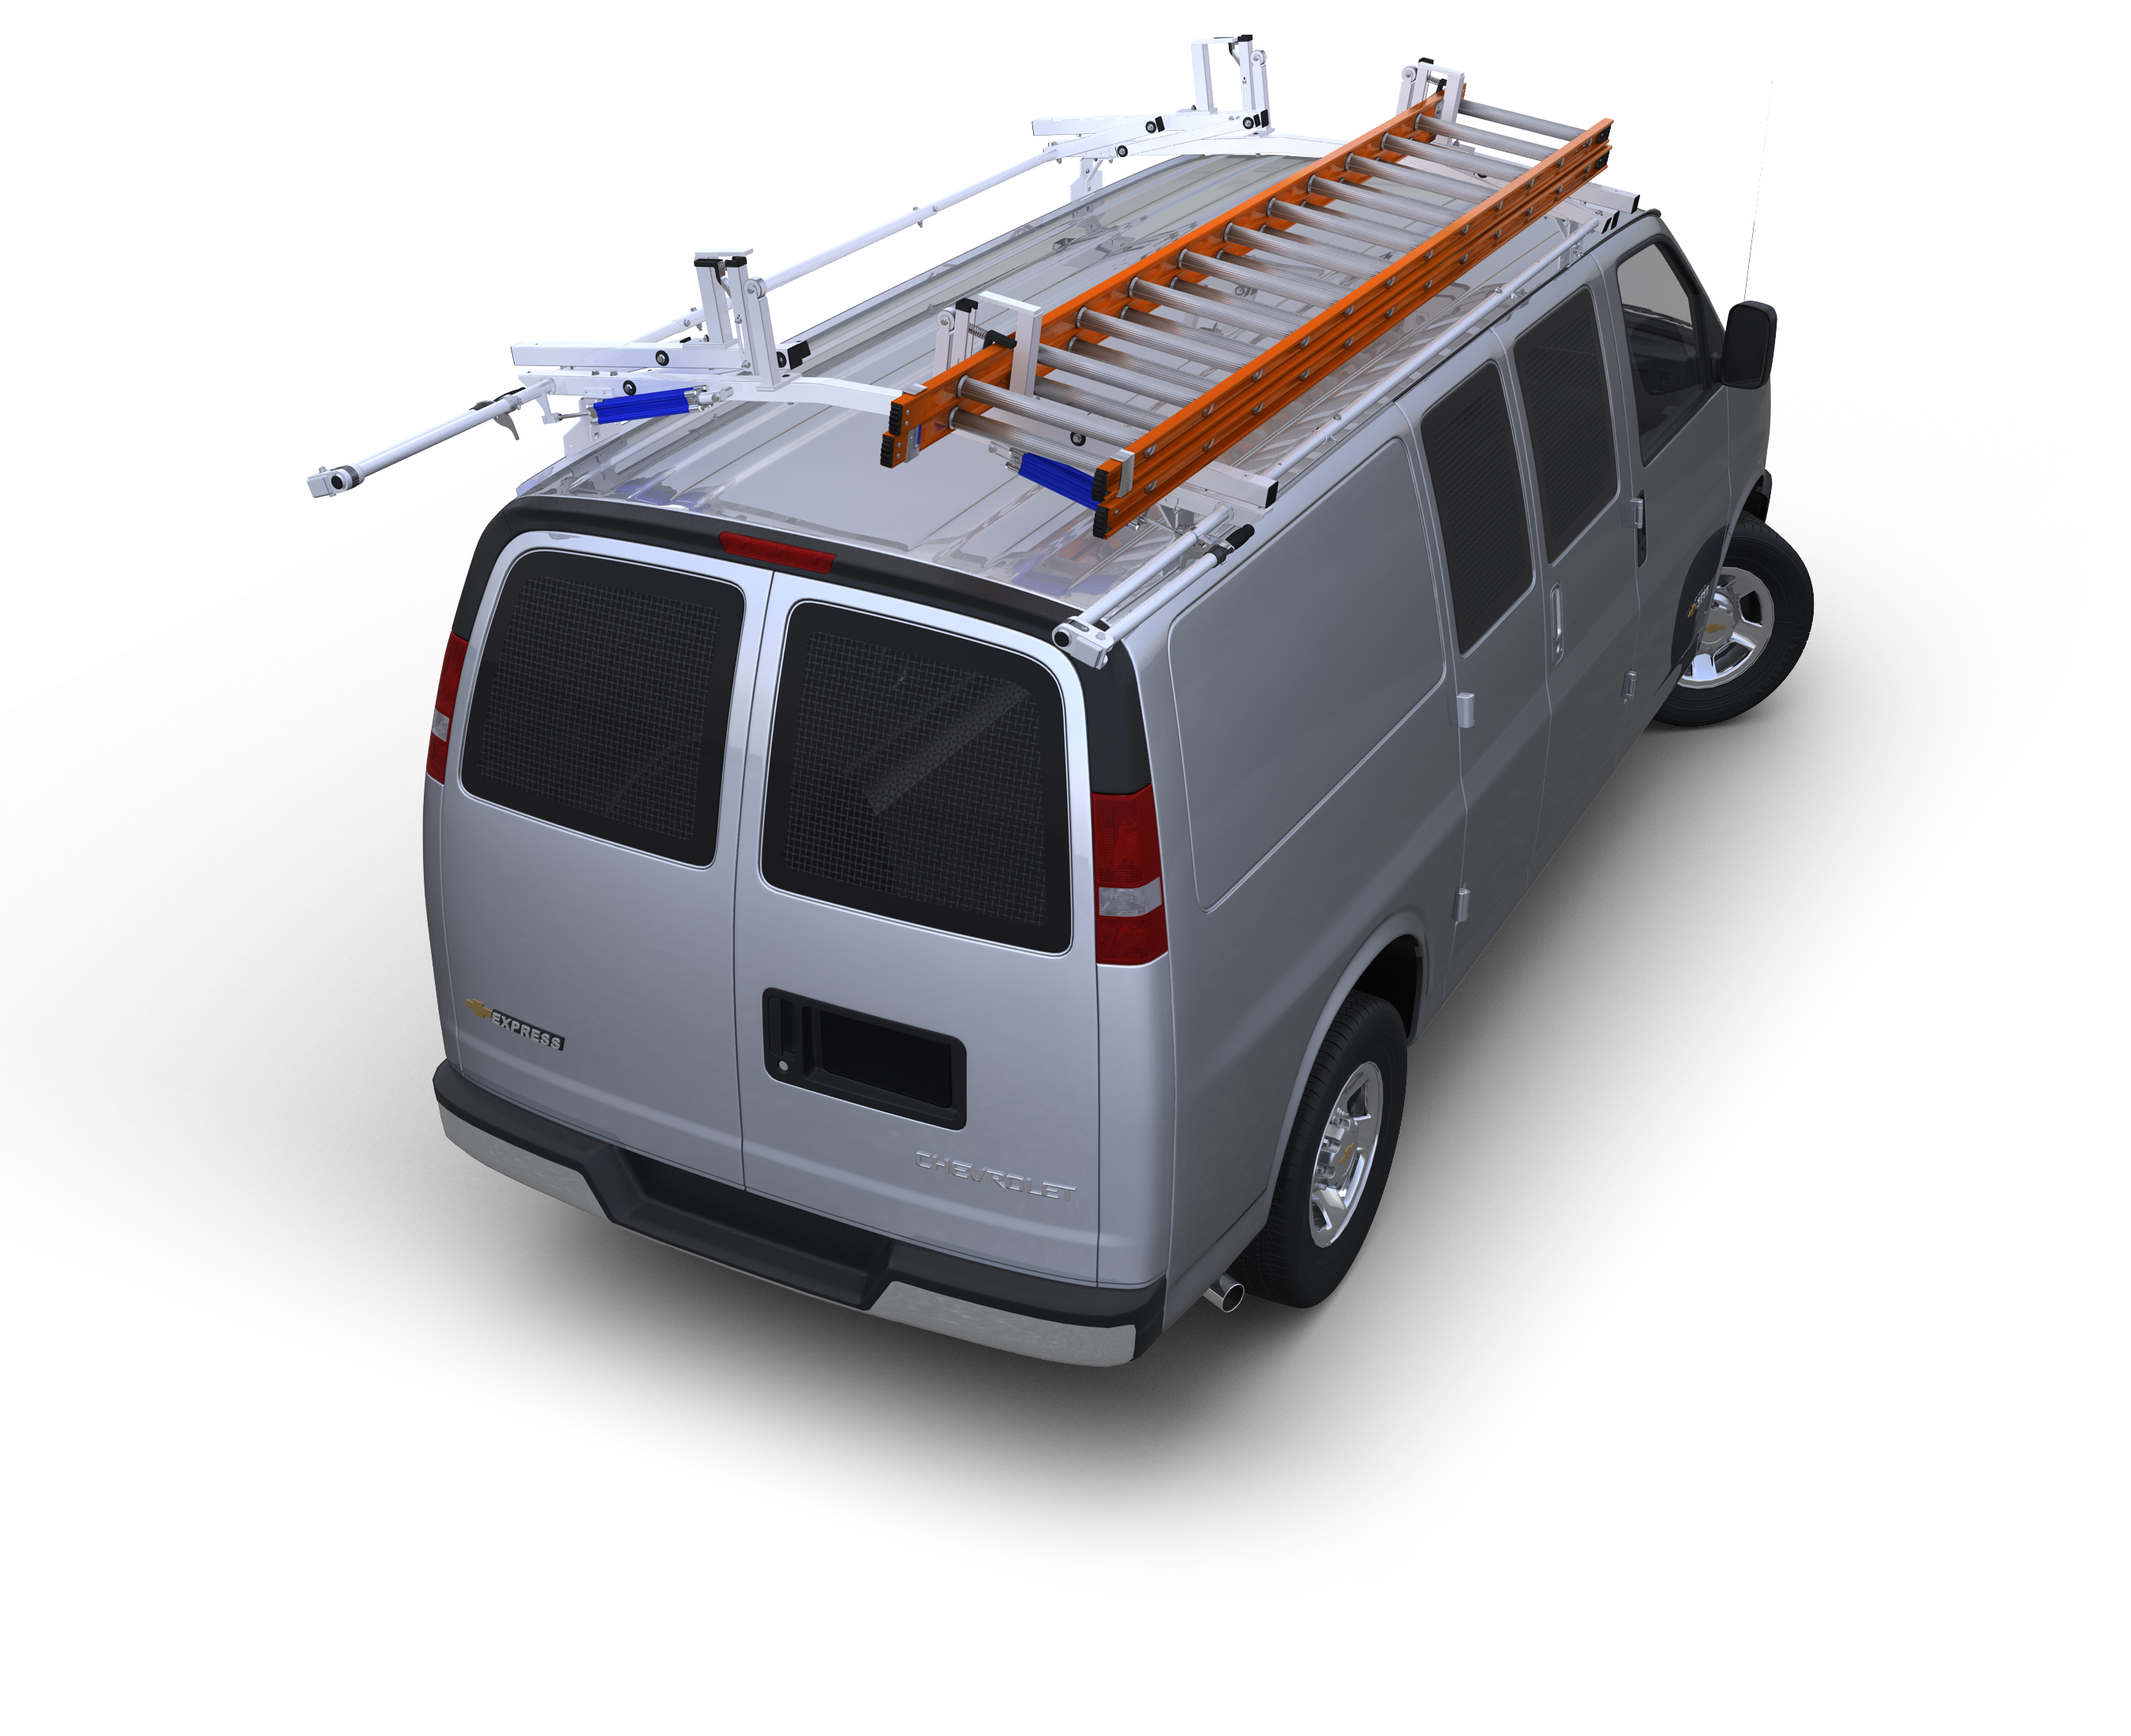 Steel Base Ladder Rack - 2003 & Older Dodge RAM Vans - SAVE UP TO 40%!